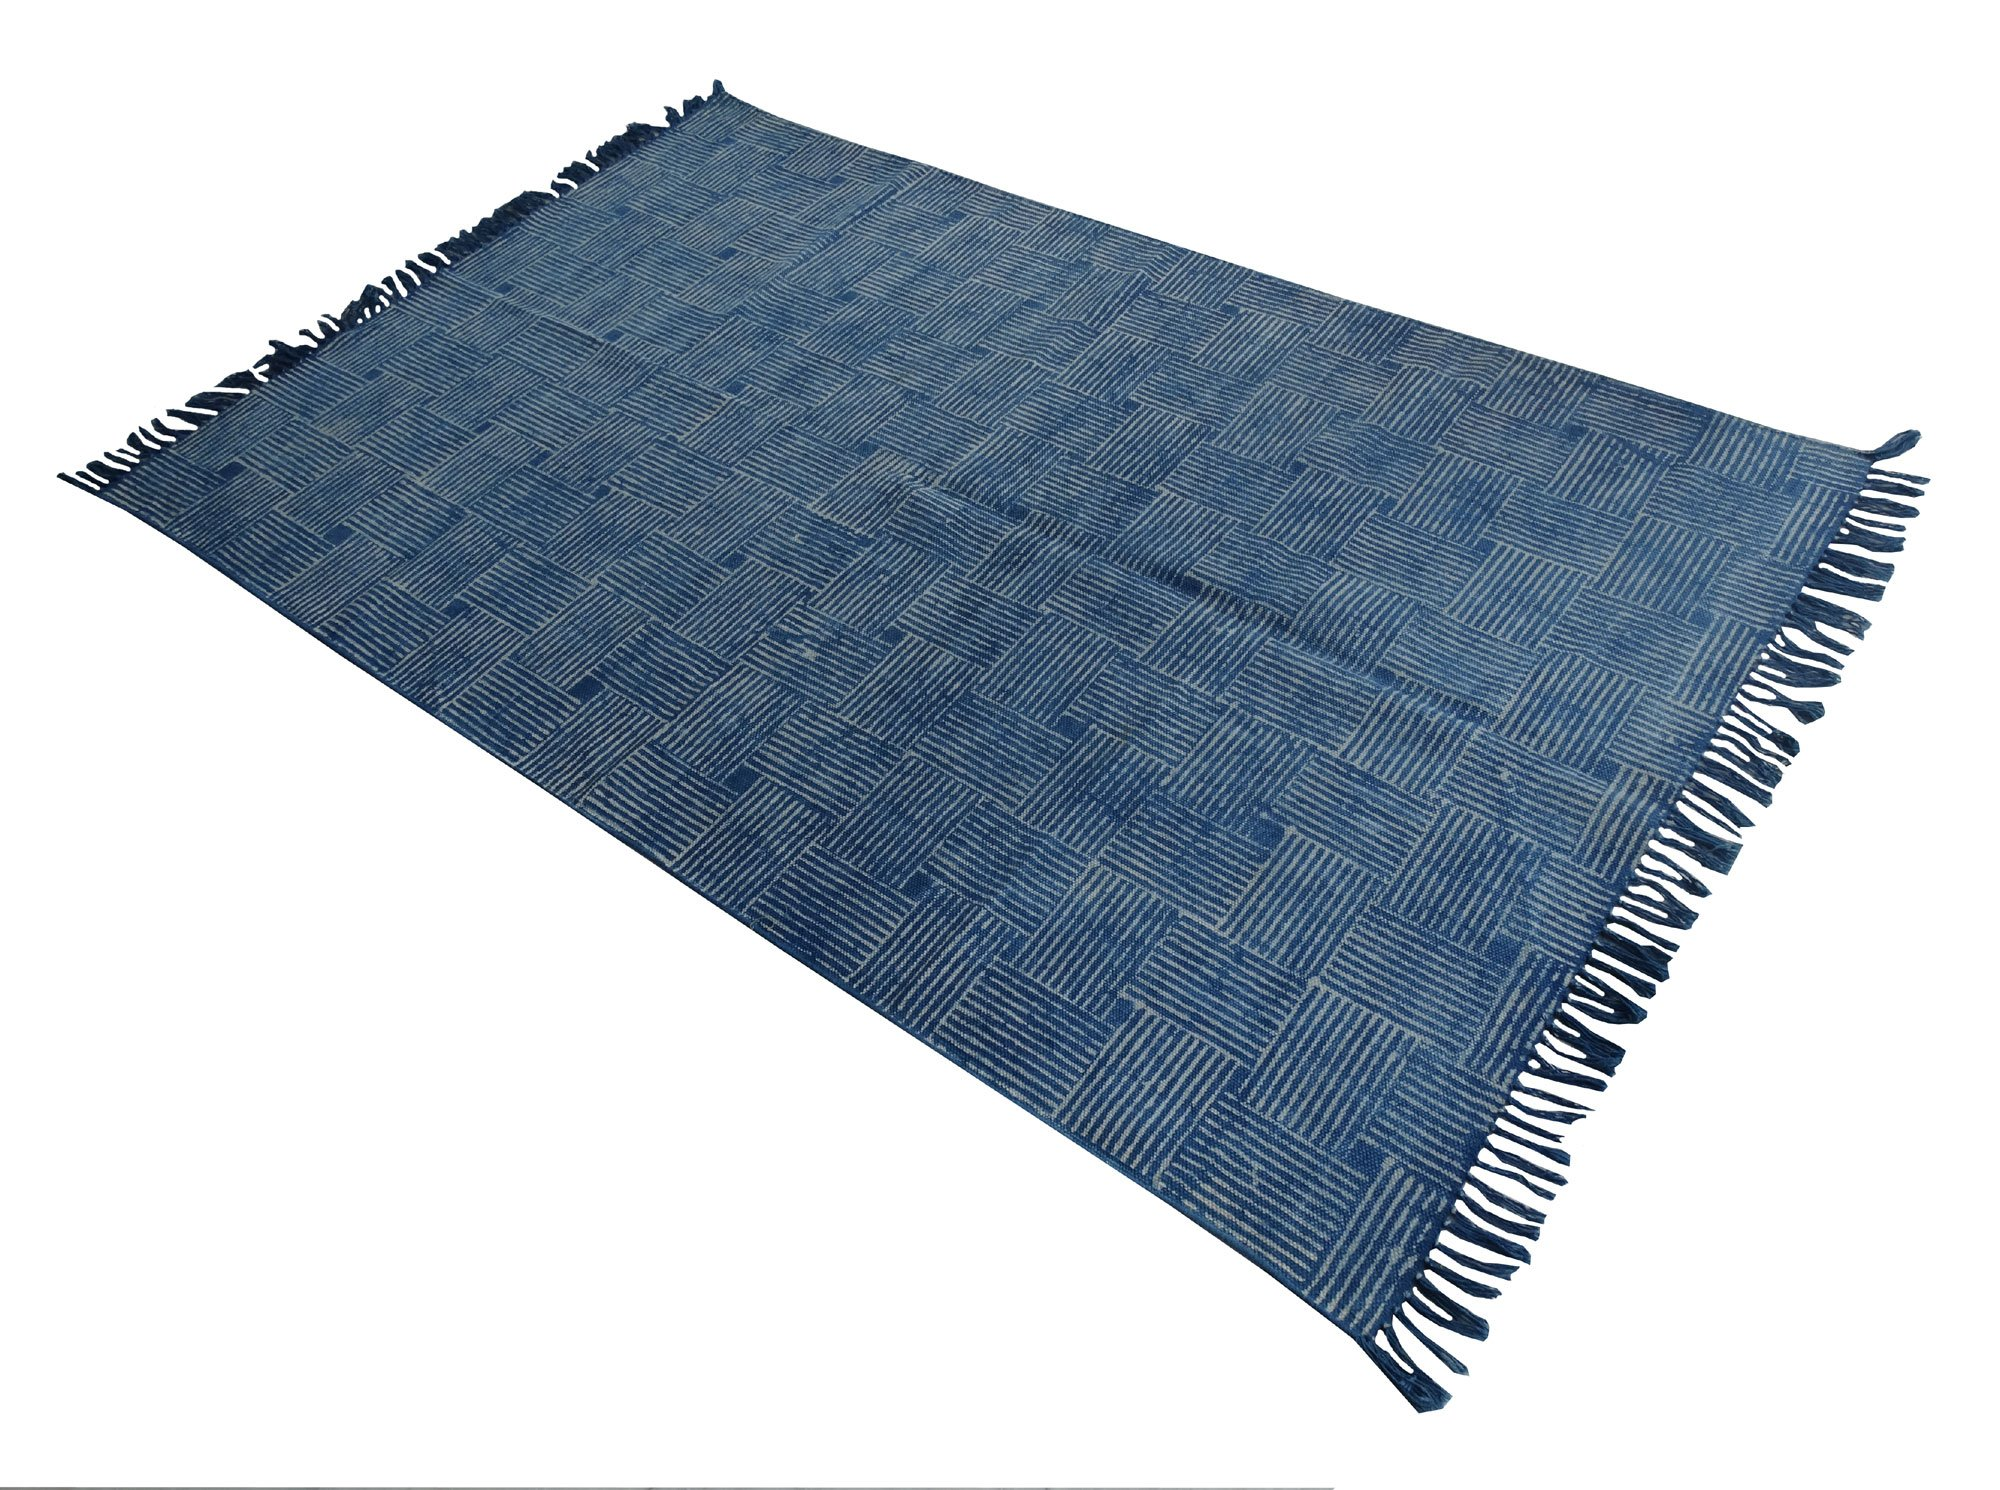 My Craft Palace Cotton Area Rug,Handmade Indigo Block Print Rug